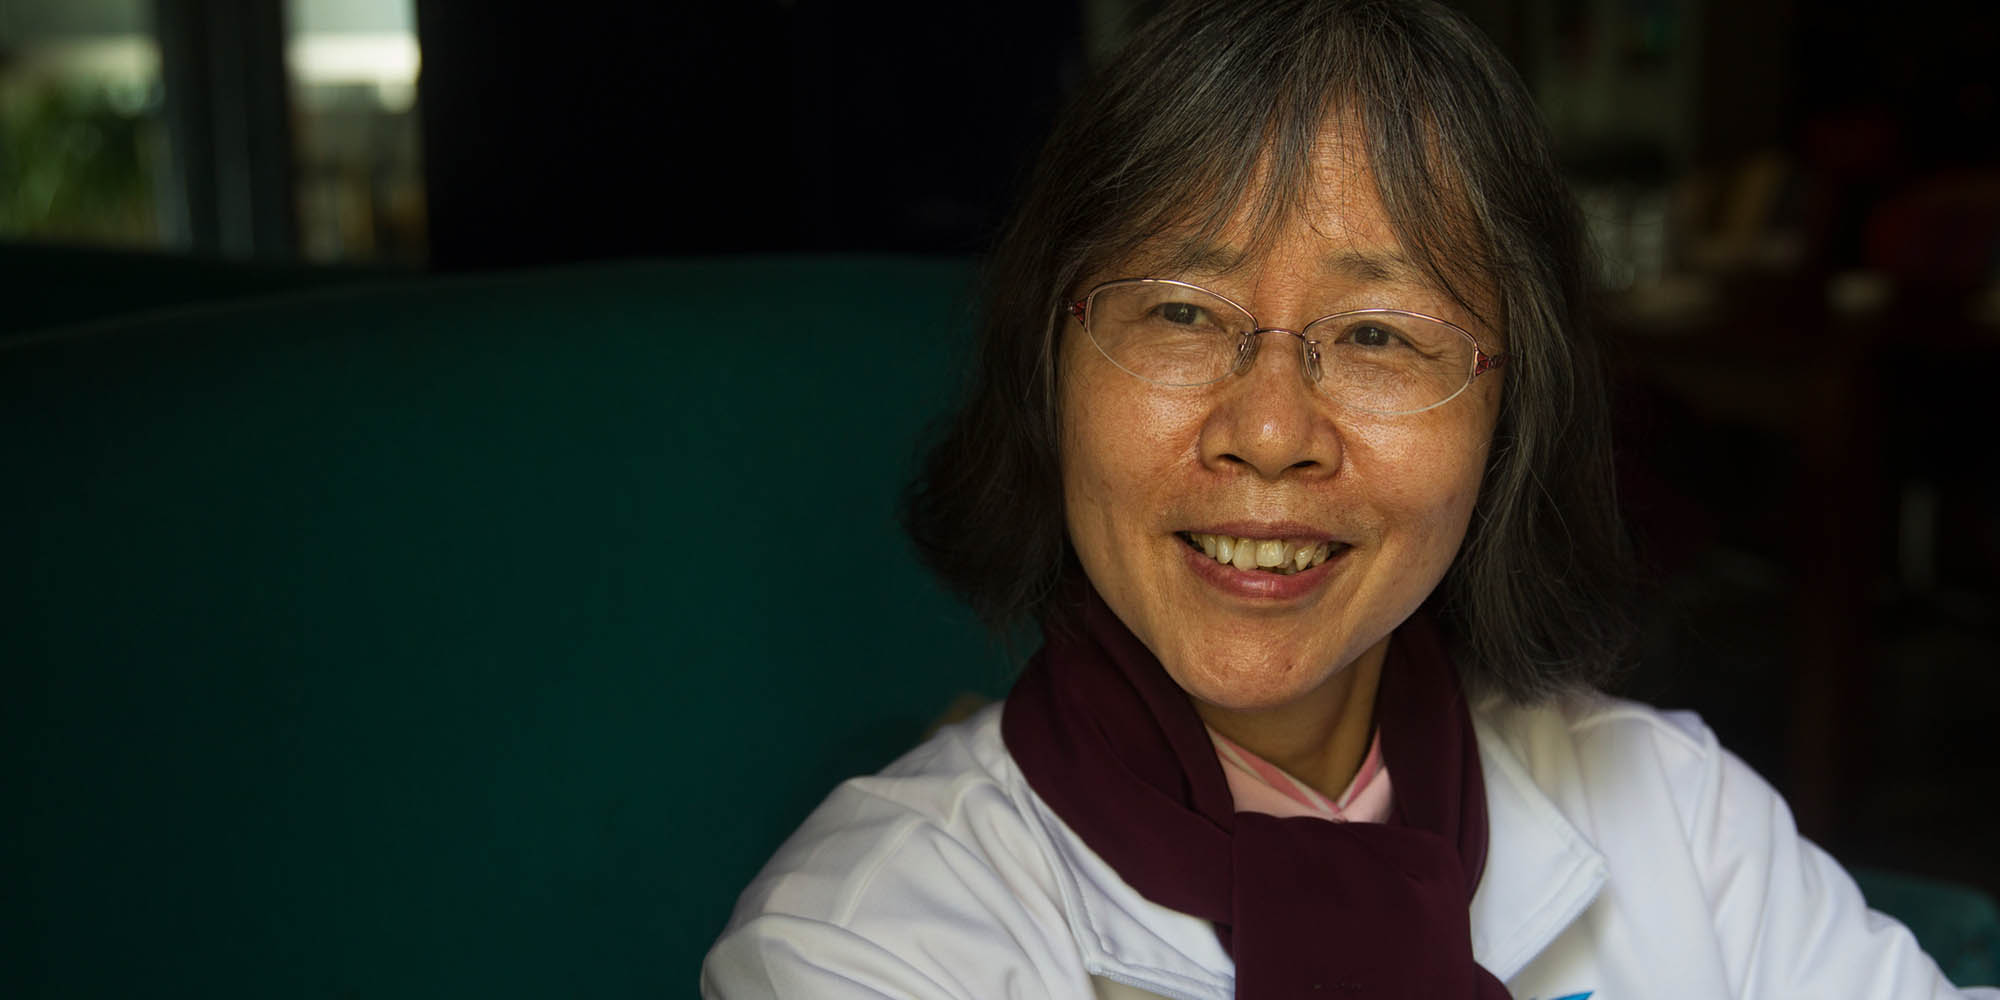 Q&A With Author Can Xue on the State of Chinese Literature